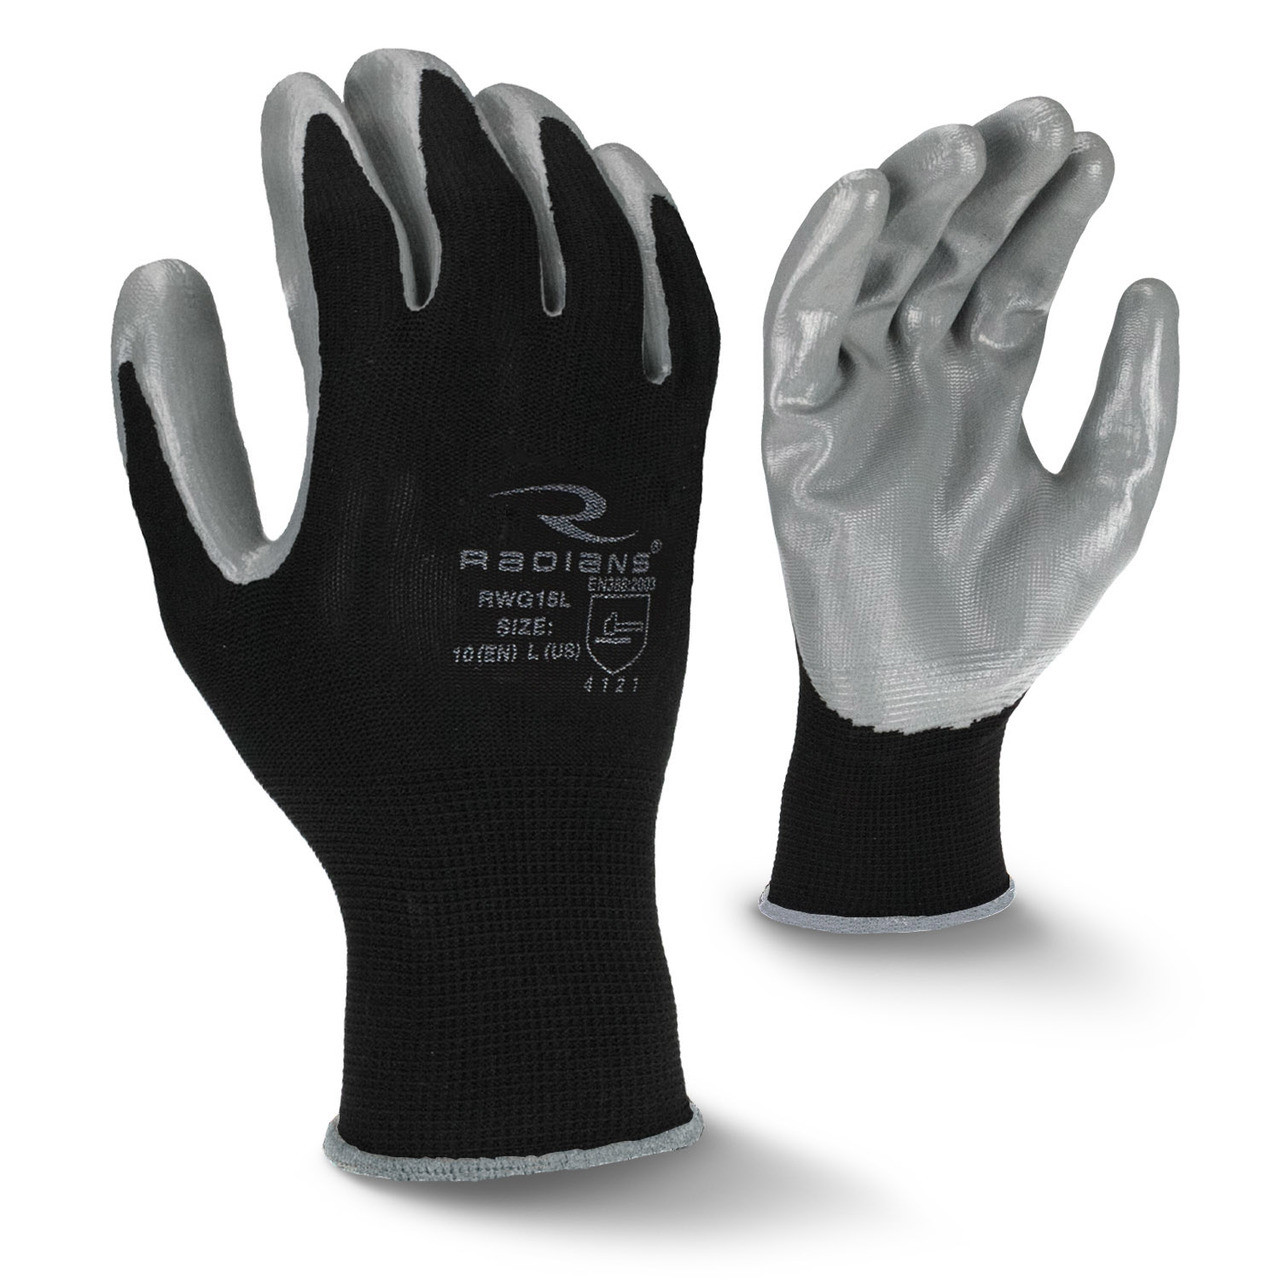 Smooth Nitrile Palm Coated Glove